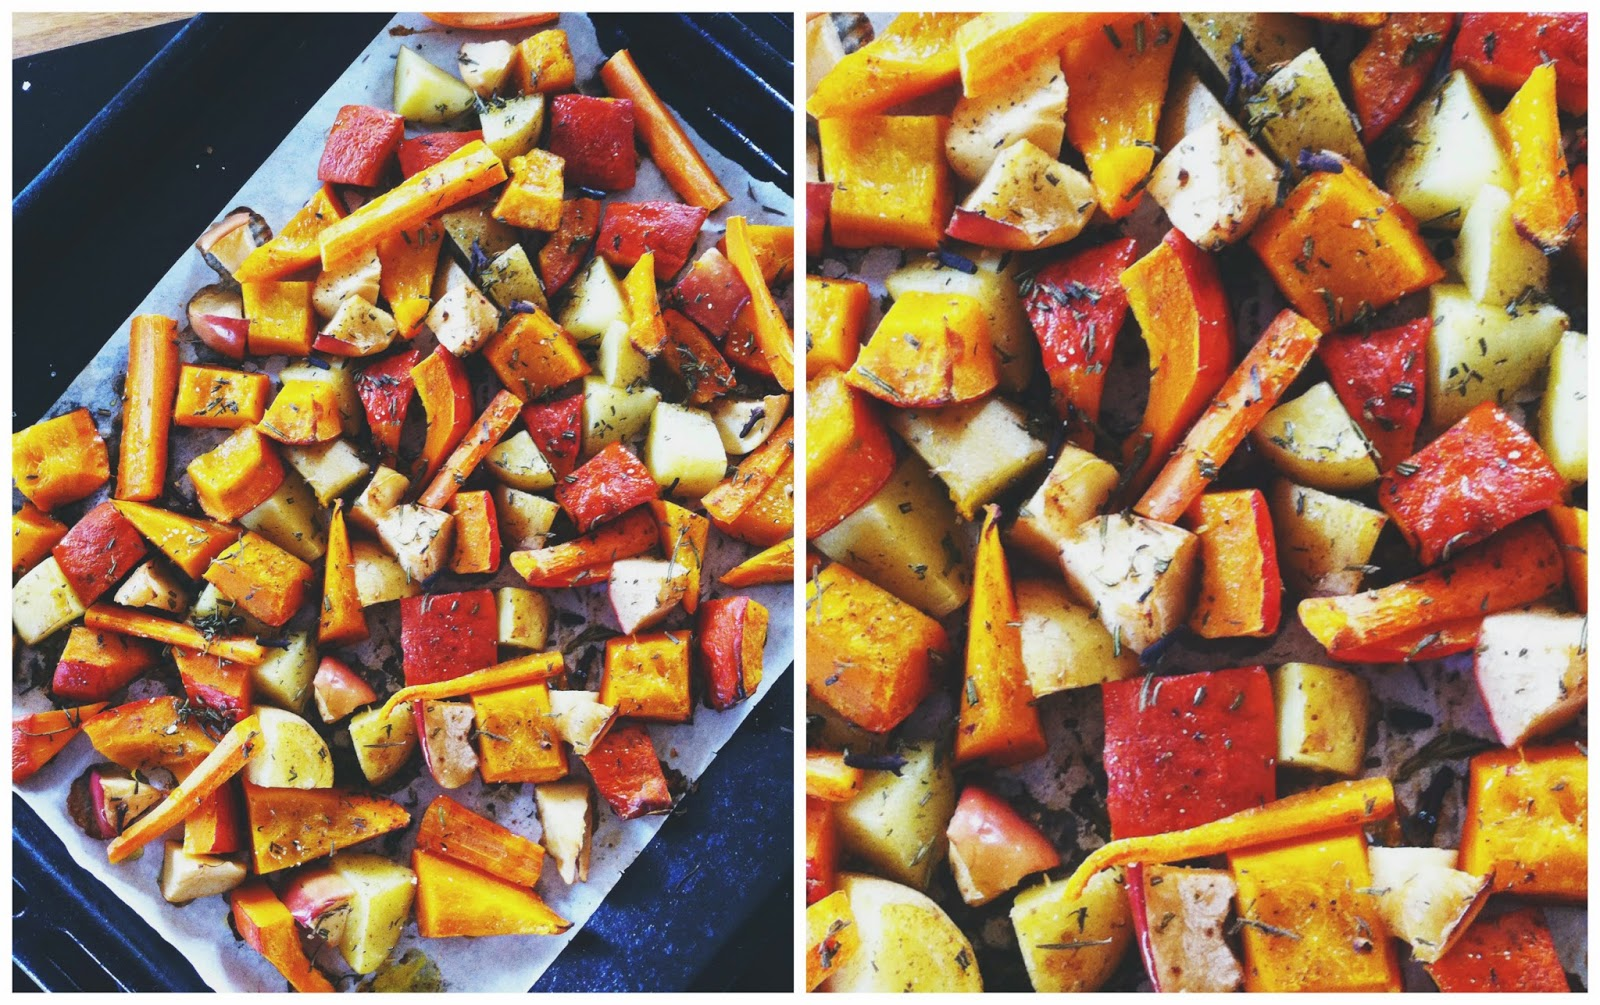 Roasted Fall Vegetables // 2 Dishes